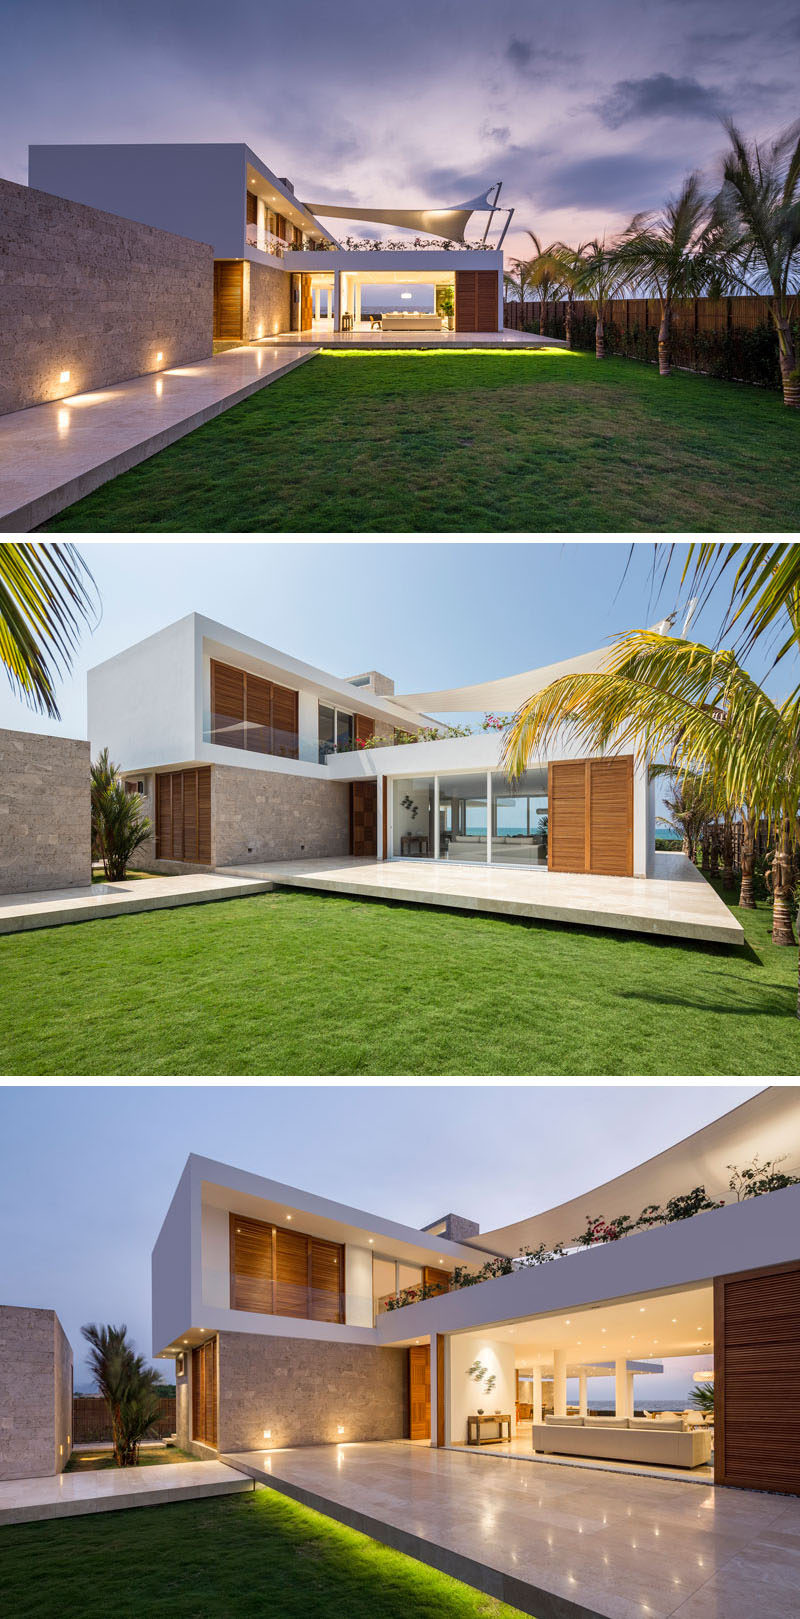 This Modern Beach House Has A Stone Walkway That Brings You To The Front Of